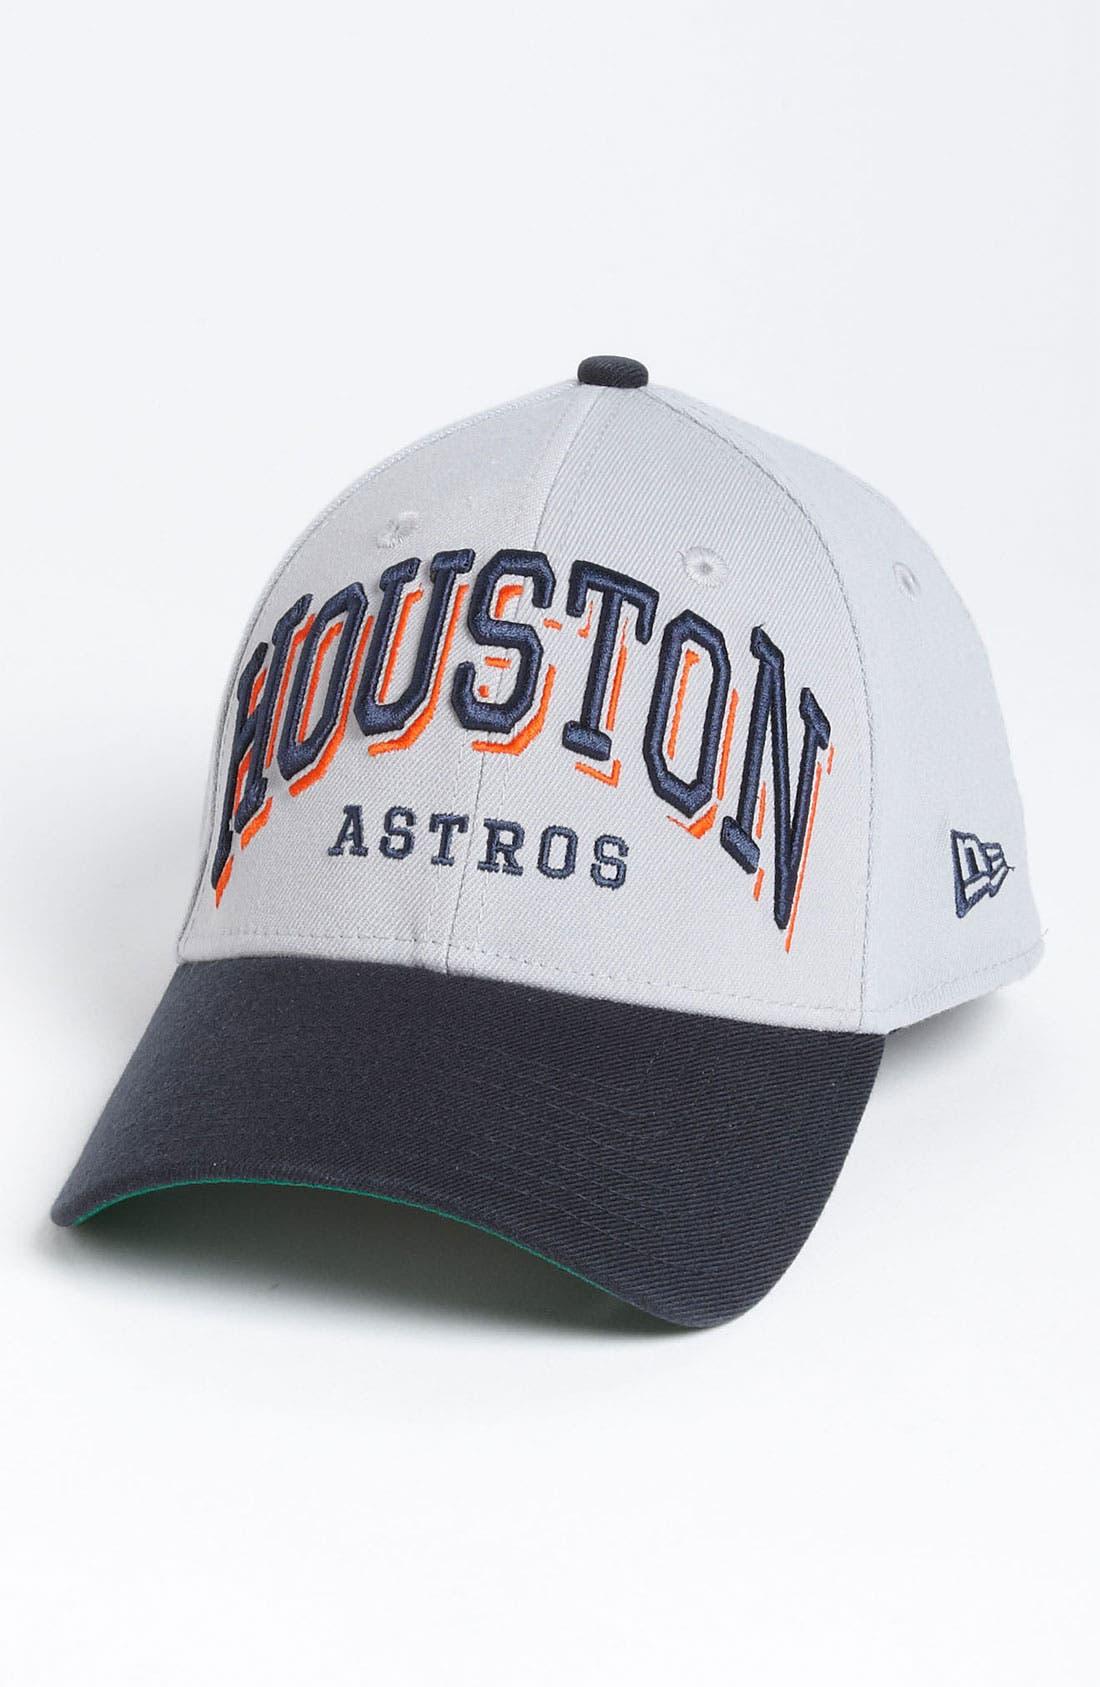 Alternate Image 1 Selected - New Era Cap 'Houston Astros - Arch Mark' Fitted Baseball Cap